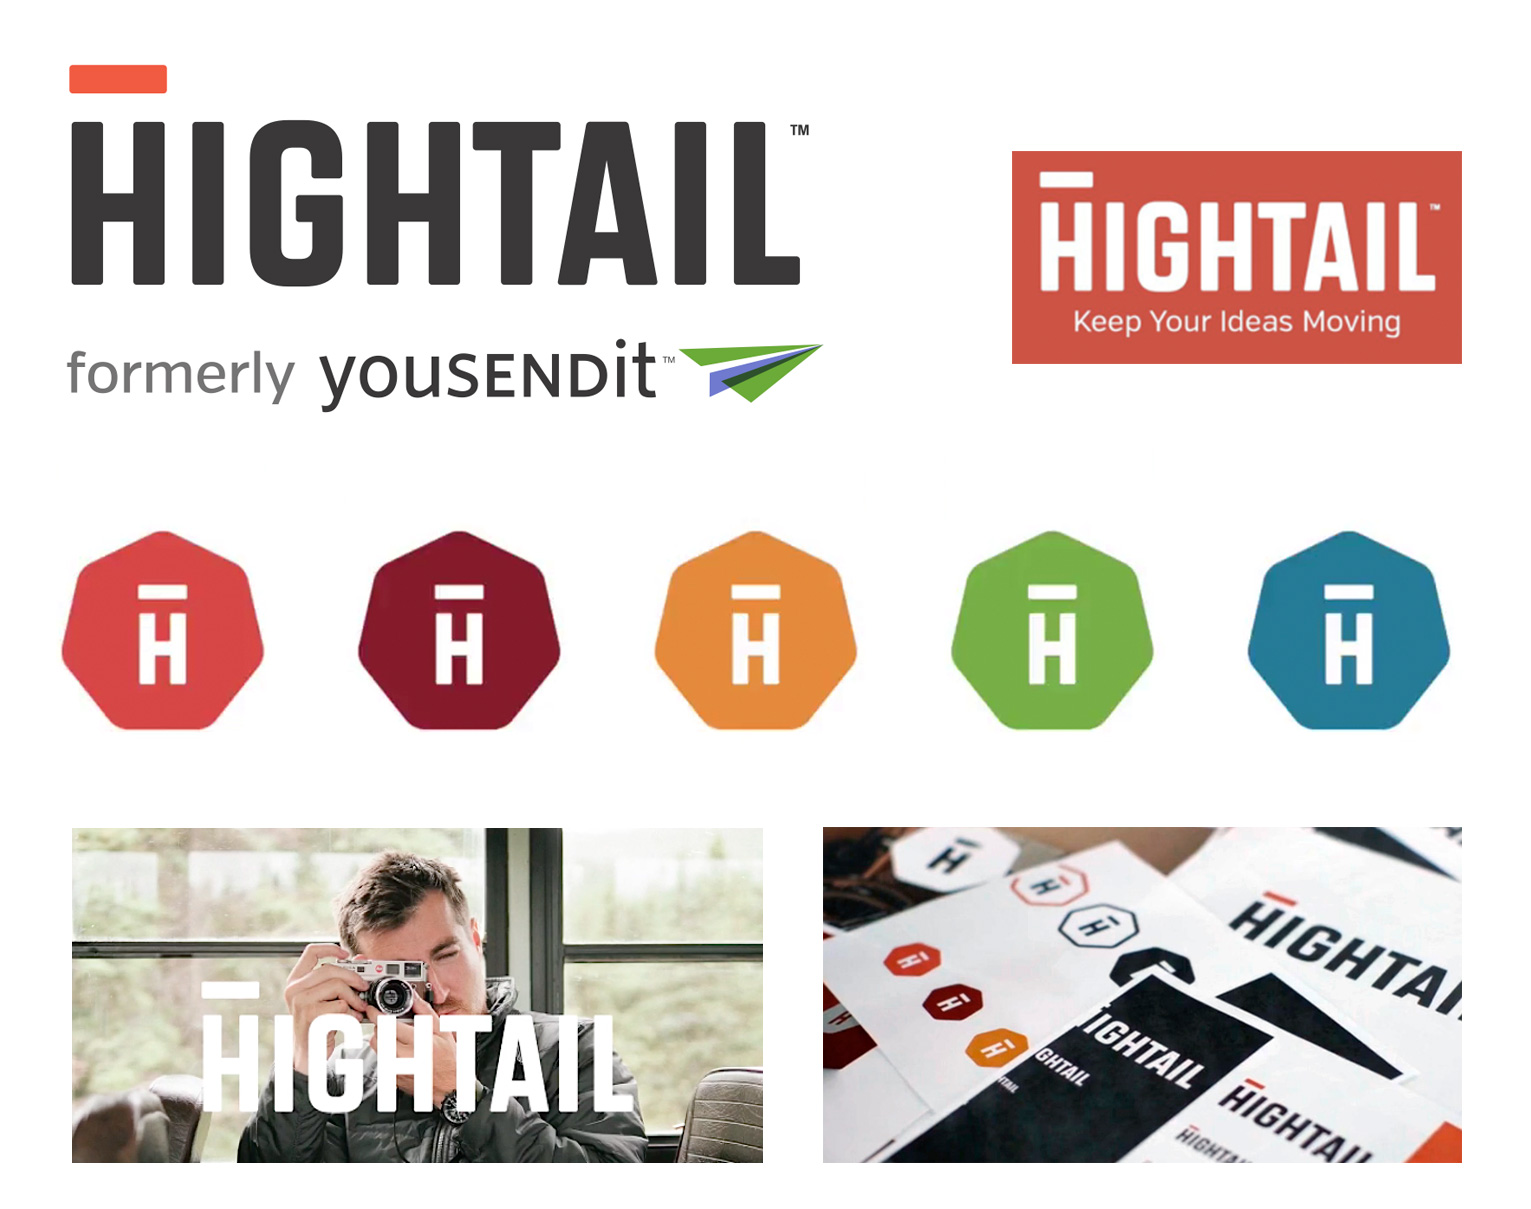 Hightail: Explaining the new name for YouSendIt